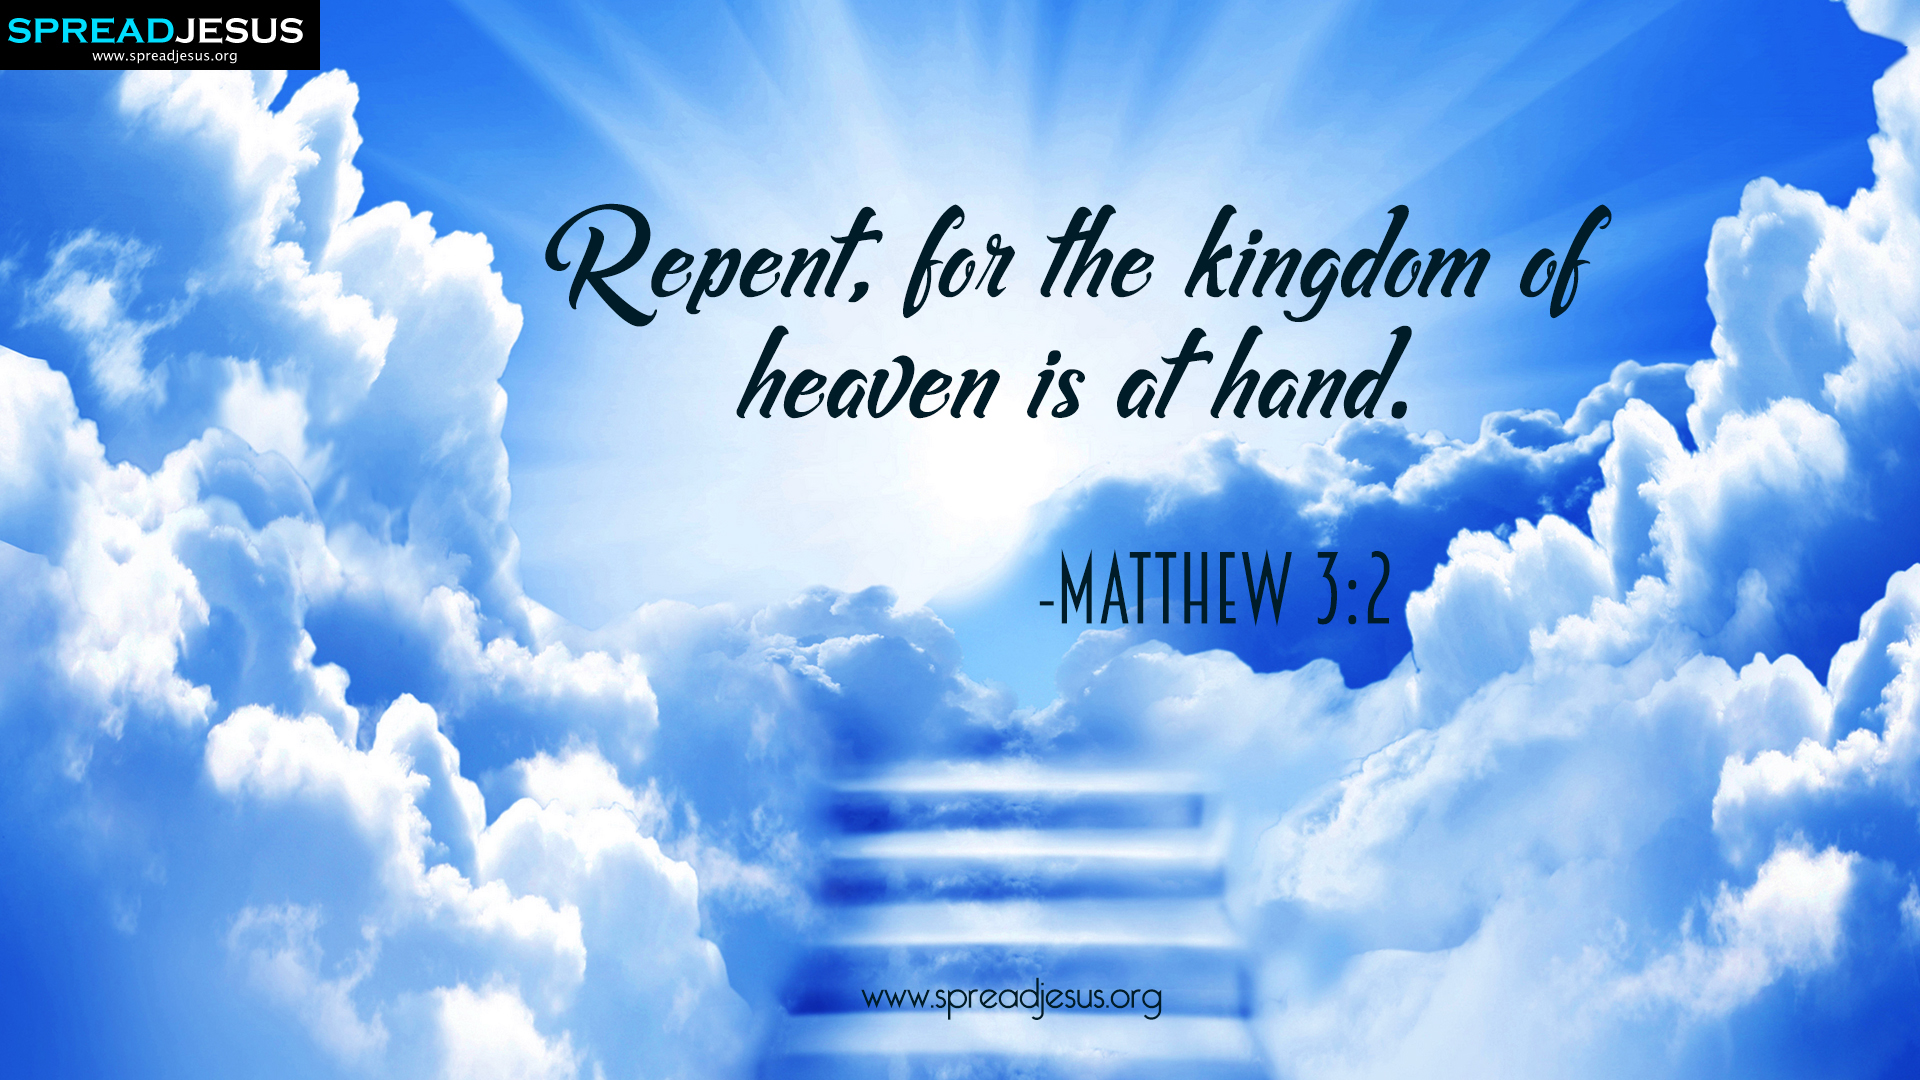 "Bible Quotes HD-Wallpaper Matthew 3:2 Download Repent,for the kingdom of heaven is at hand.""-Matthew 3:2"